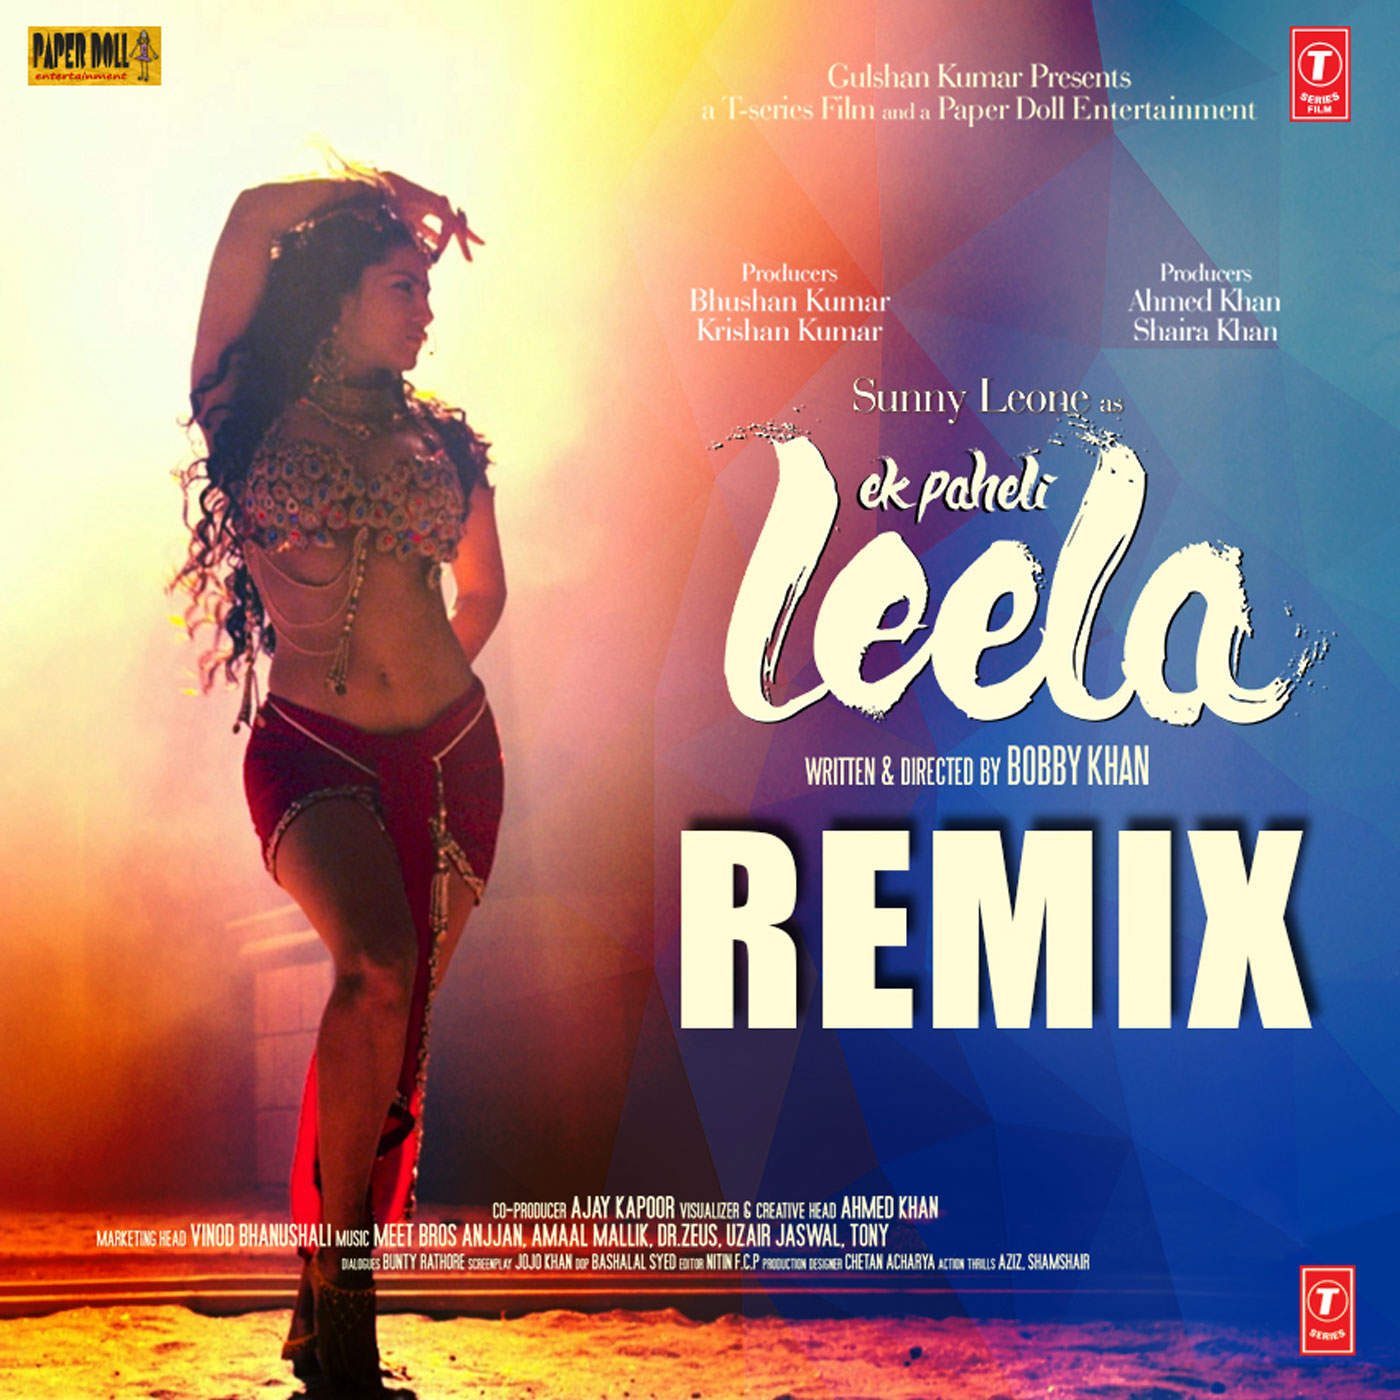 Old Hindi Songs Remix Songs Pk Cpasupport Home » all hindi dj remix songs » new dj remix hindi bollywood 2020 songs. old hindi songs remix songs pk cpasupport